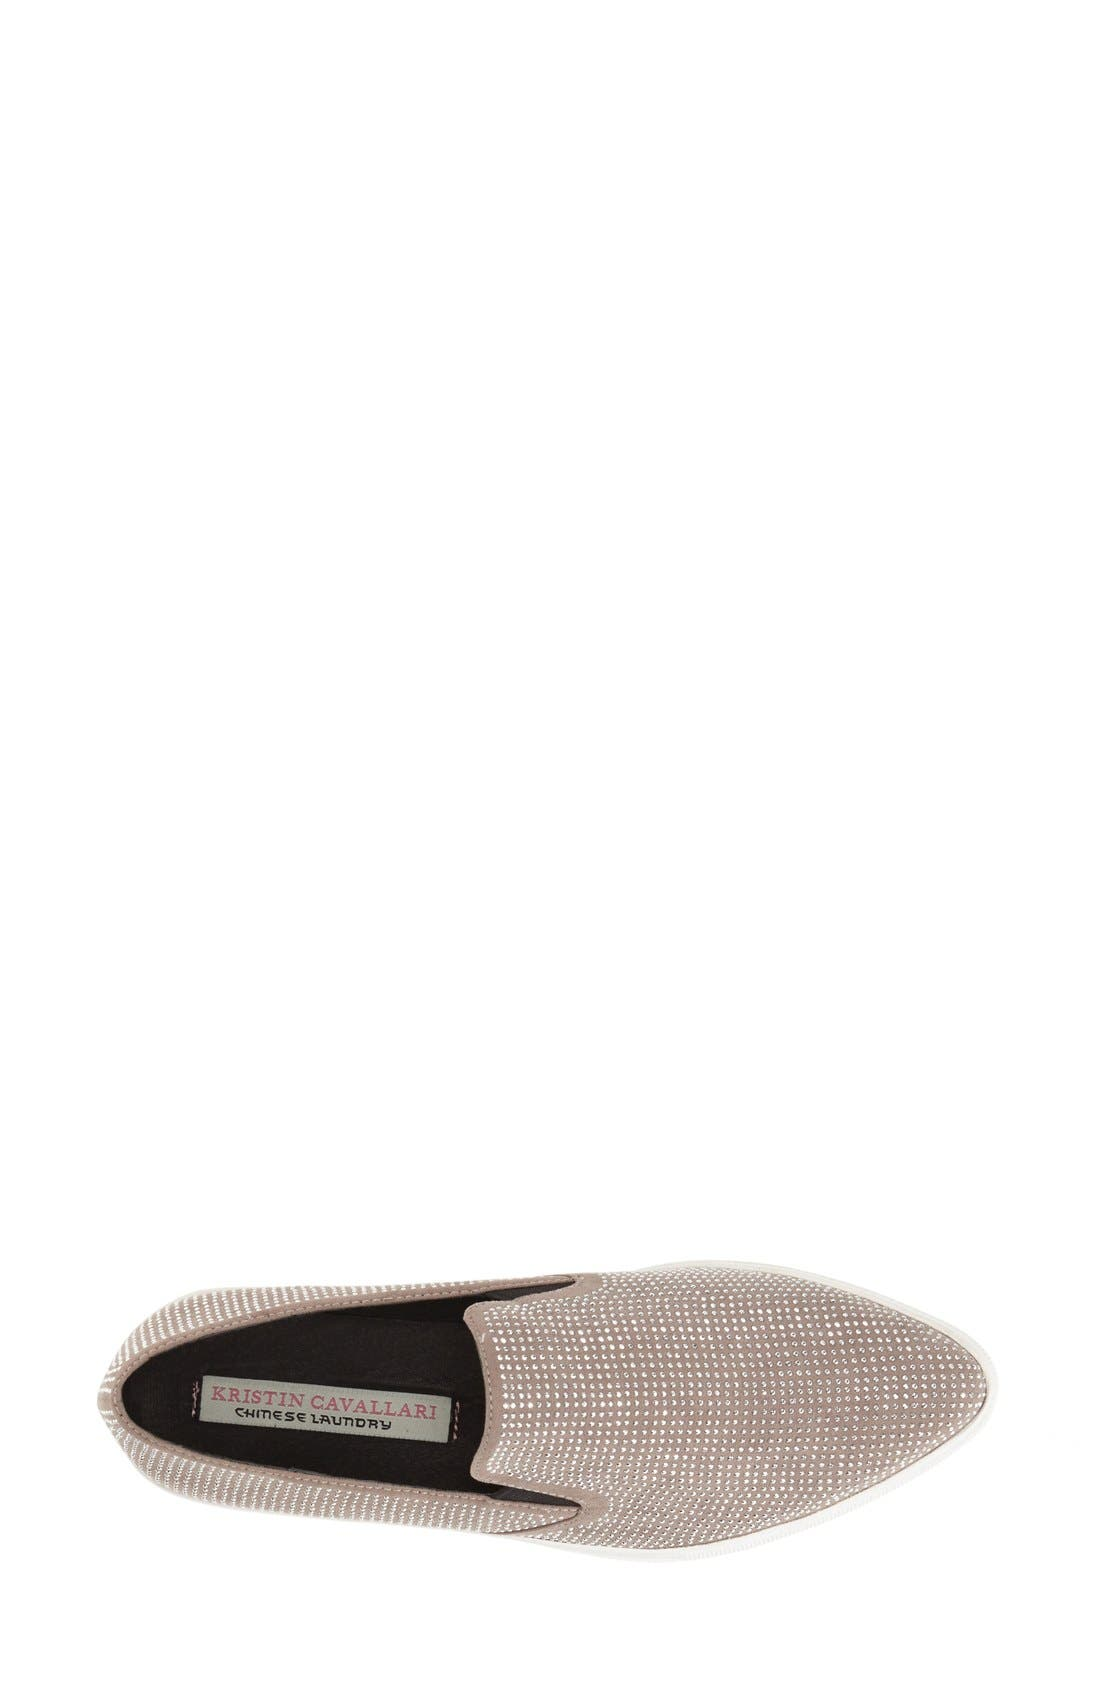 KRISTIN CAVALLARI,                             'Outcome' Embellished Slip-On Sneaker,                             Alternate thumbnail 2, color,                             020